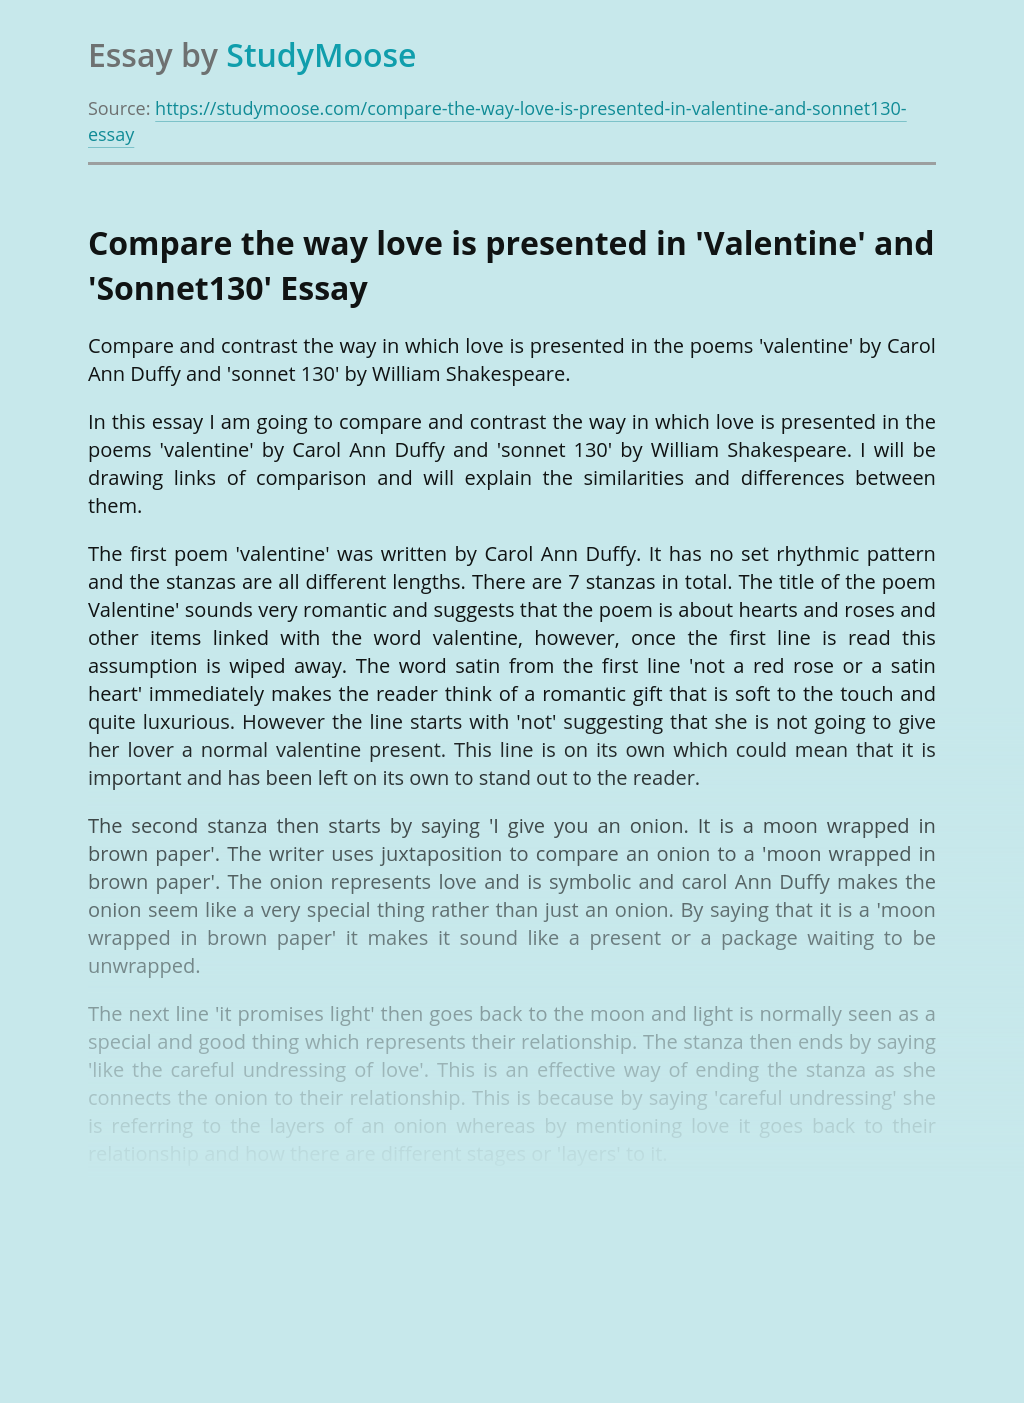 Comparison of Valentine and Sonnet 130 by William Shakespeare